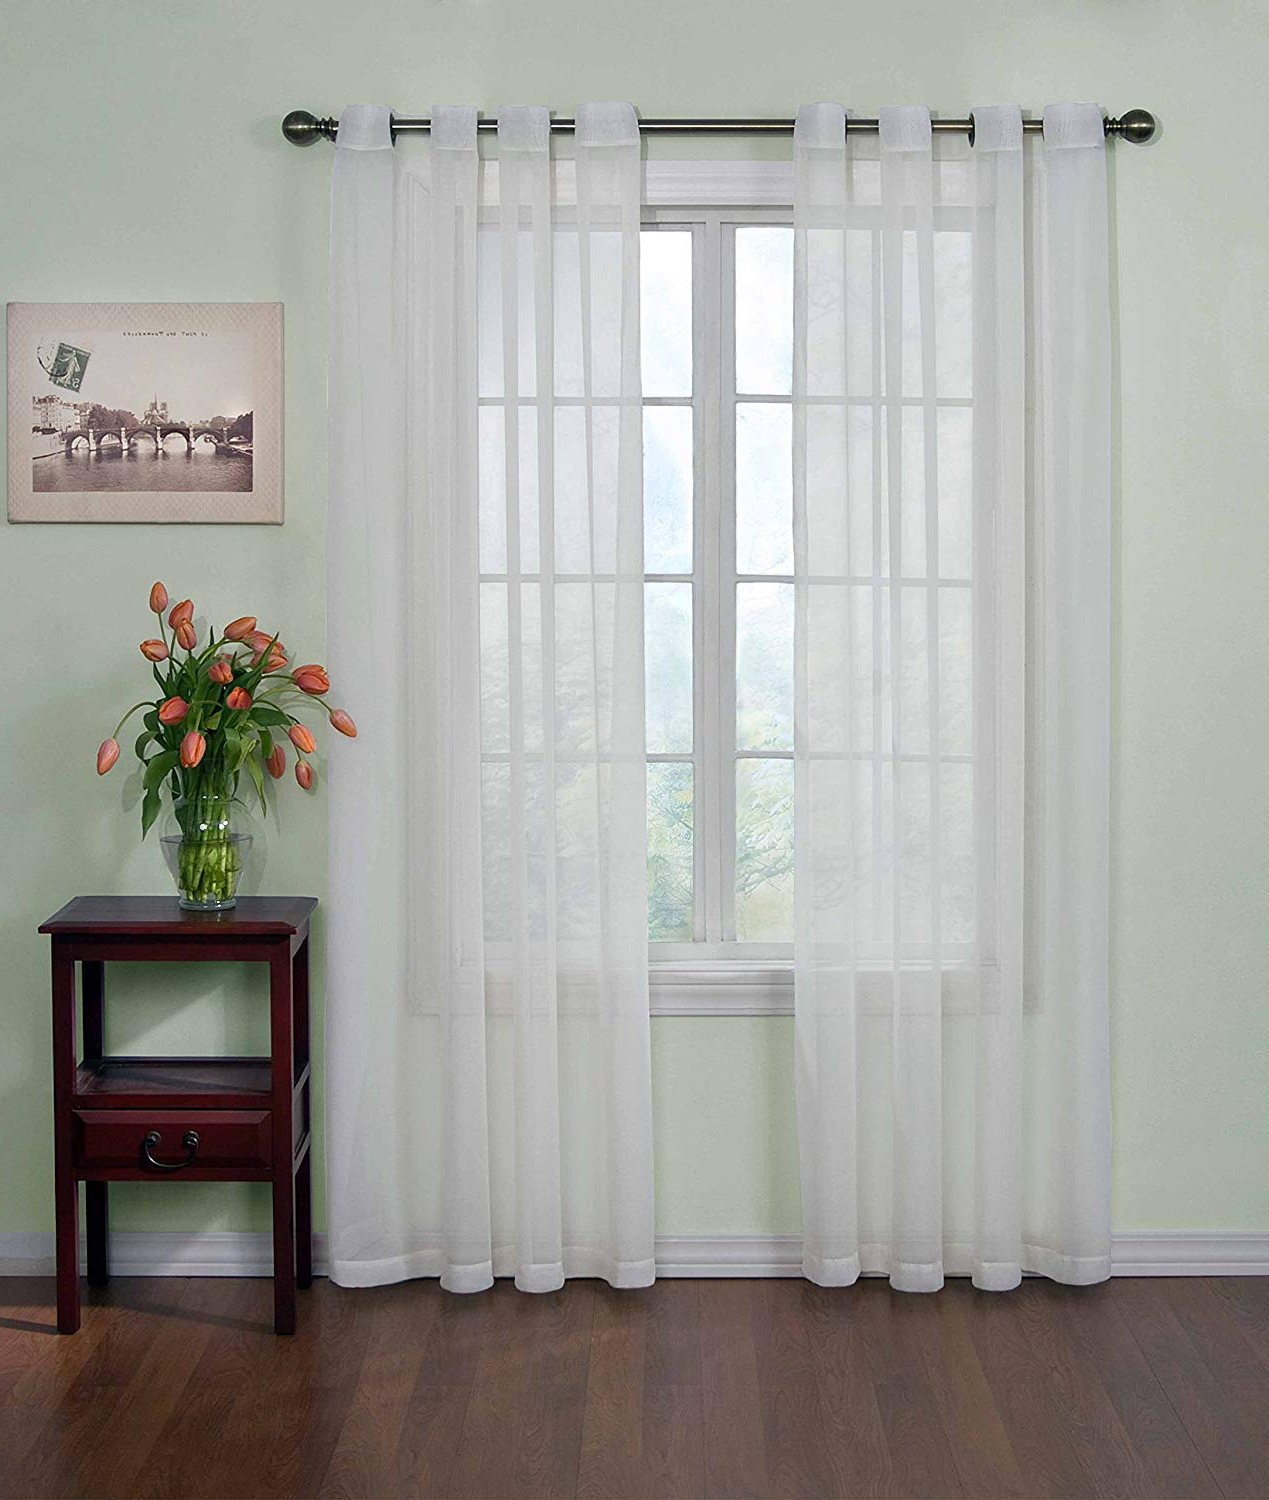 """Well Known Light Filtering Sheer Single Curtain Panels Intended For Curtain Fresh Sheer Curtains For Bedroom – Arm And Hammer 59"""" X 84"""" Light  Filtering Single Panel Grommet Top Window Treatment For Living Room, White (View 18 of 20)"""